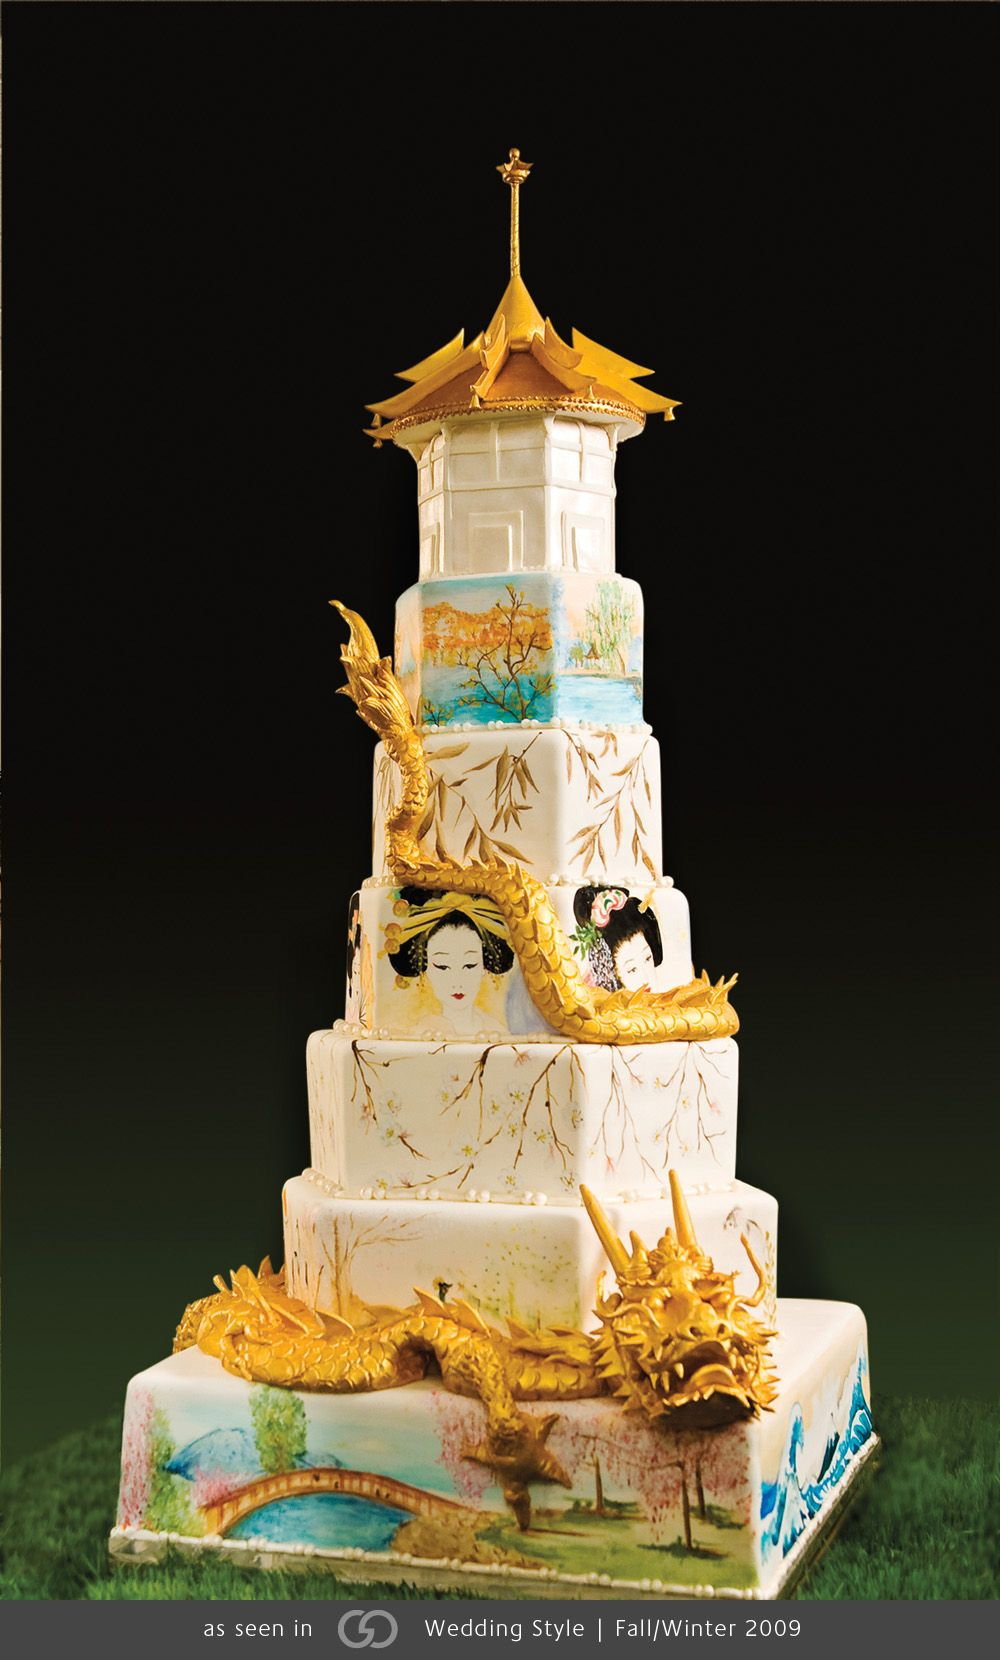 Japanese-inspired cake with hand-painted scenes and an 18K gold leaf dragon and pagoda. @grace_ormande @wedding_style